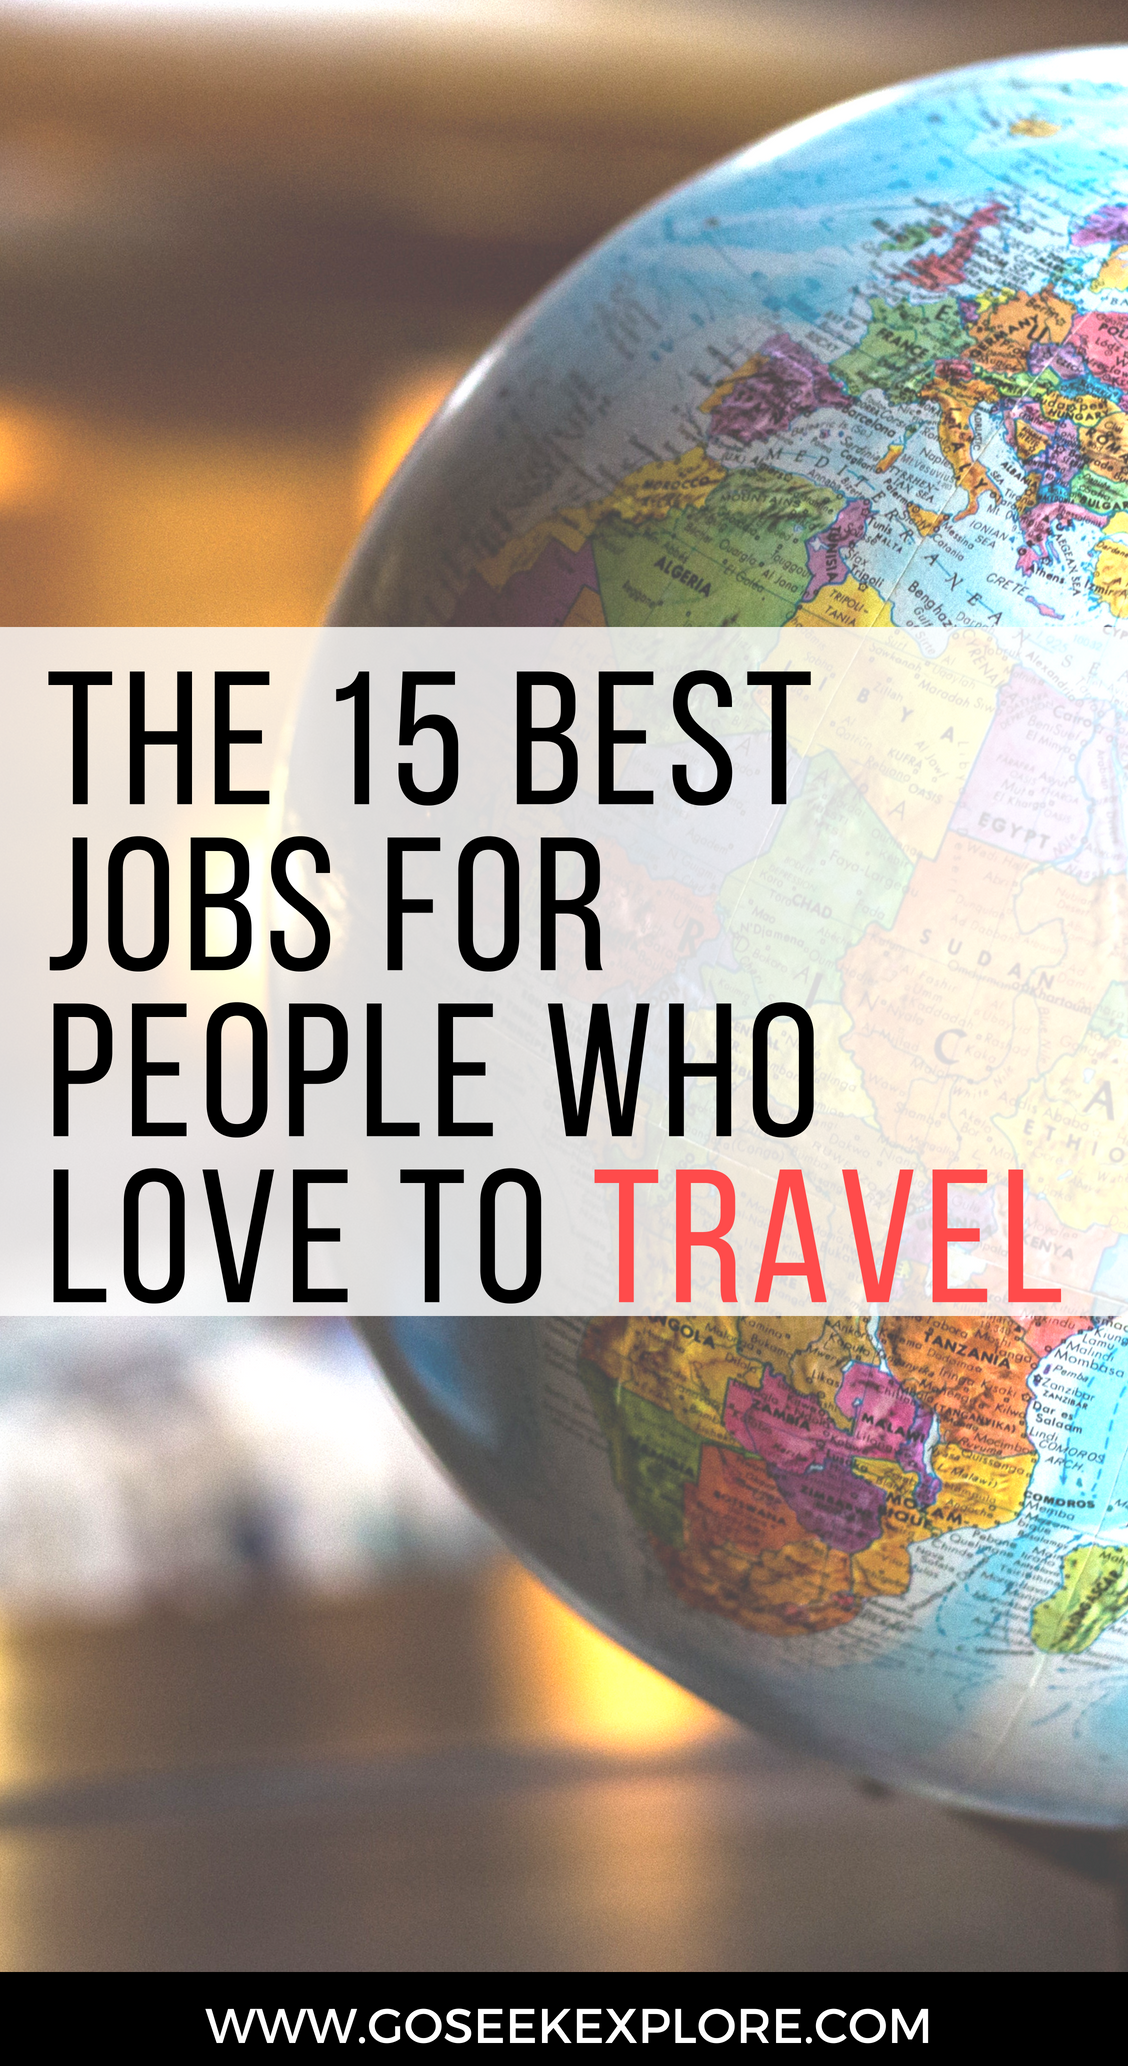 The 15 Best Jobs for People who love to TRAVEL! How to get paid to travel, for real plus tips for how to get started. Super helpful guide! // goseekexplore.com // Ally Archer // 15-best-jobs-people-love-travel